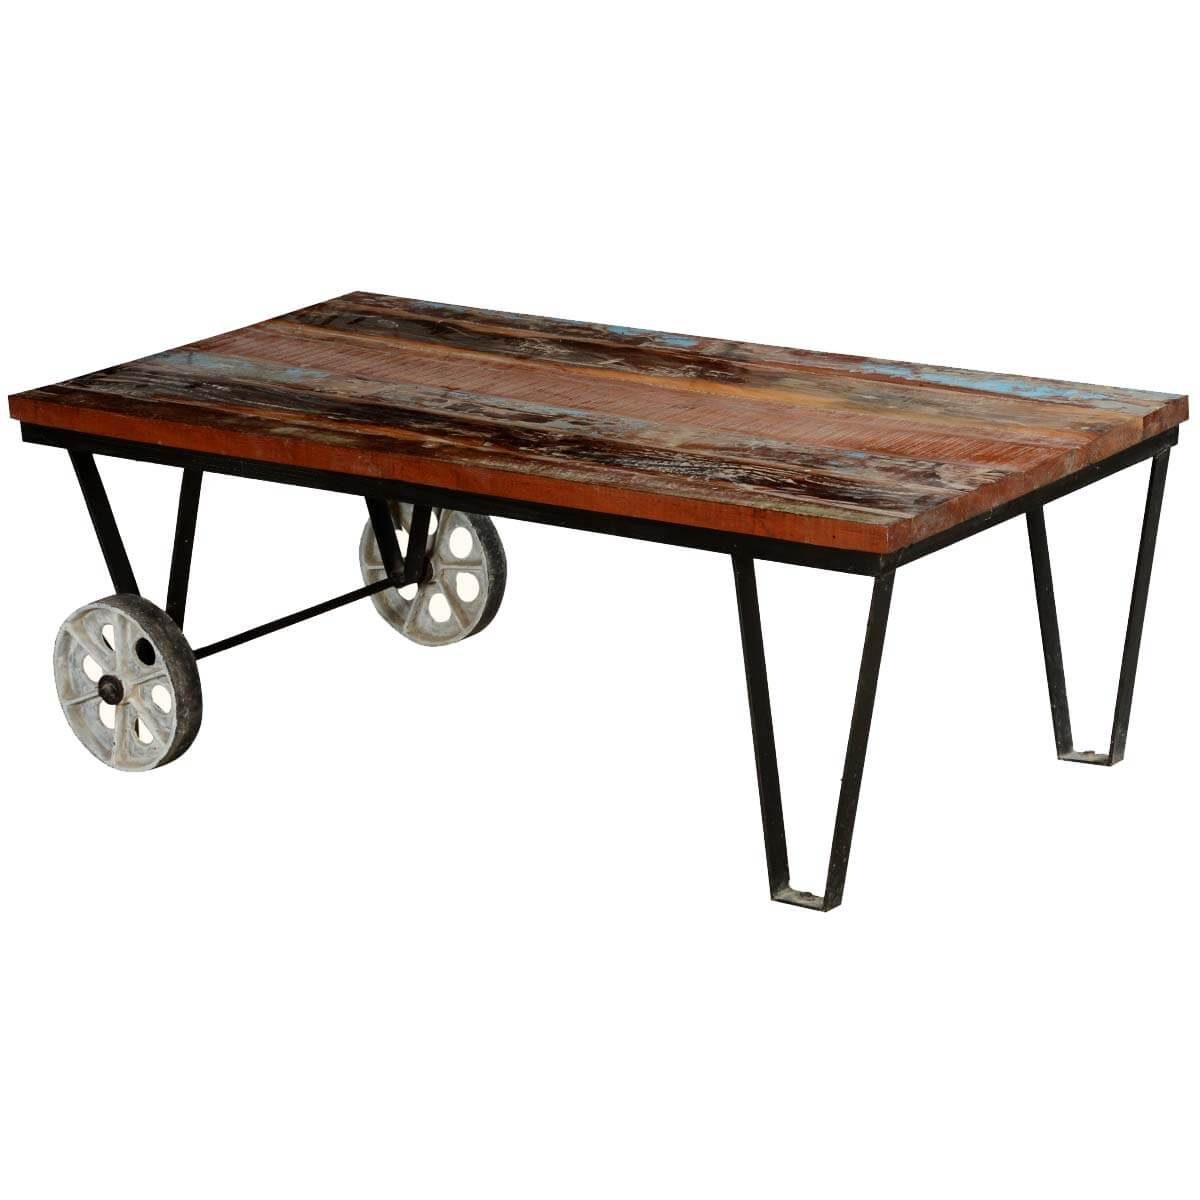 Large Coffee Table Industrial Style: Reclaimed Wood Industrial Style Factory Cart Coffee Table